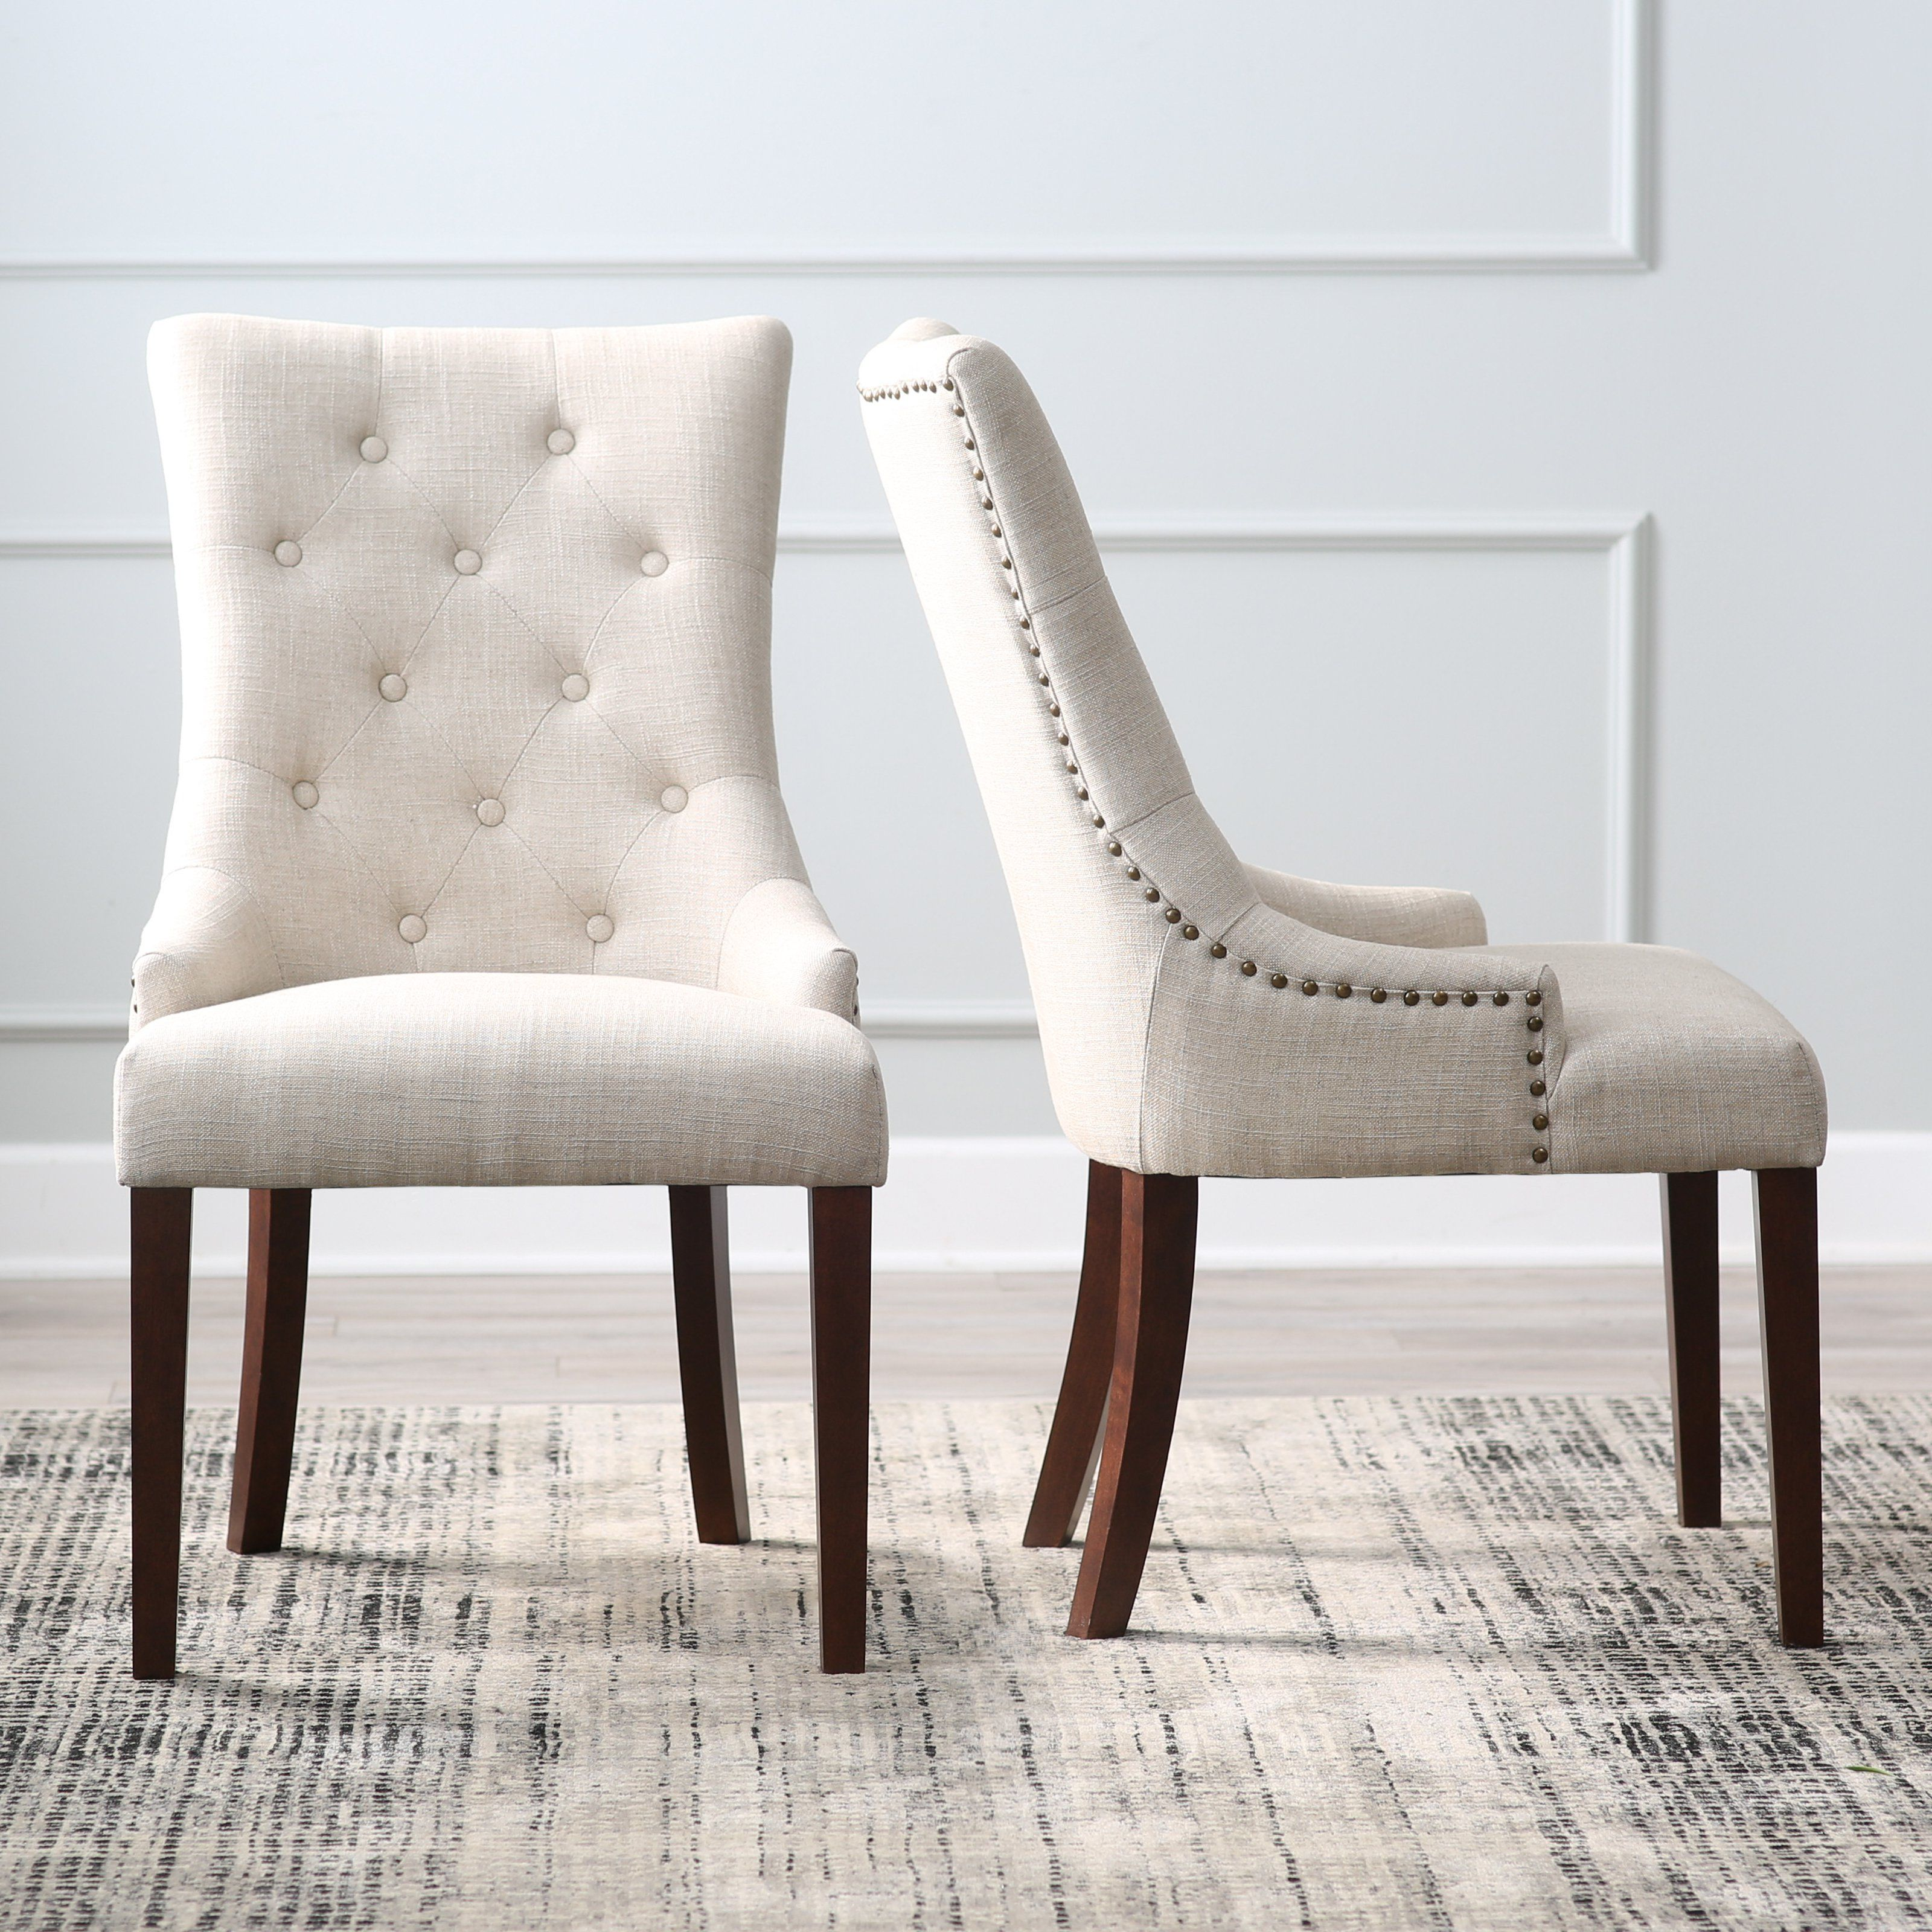 Exceptional Belham Living Thomas Tufted Tweed Dining Chairs   Set Of 2 | From  Hayneedle.com